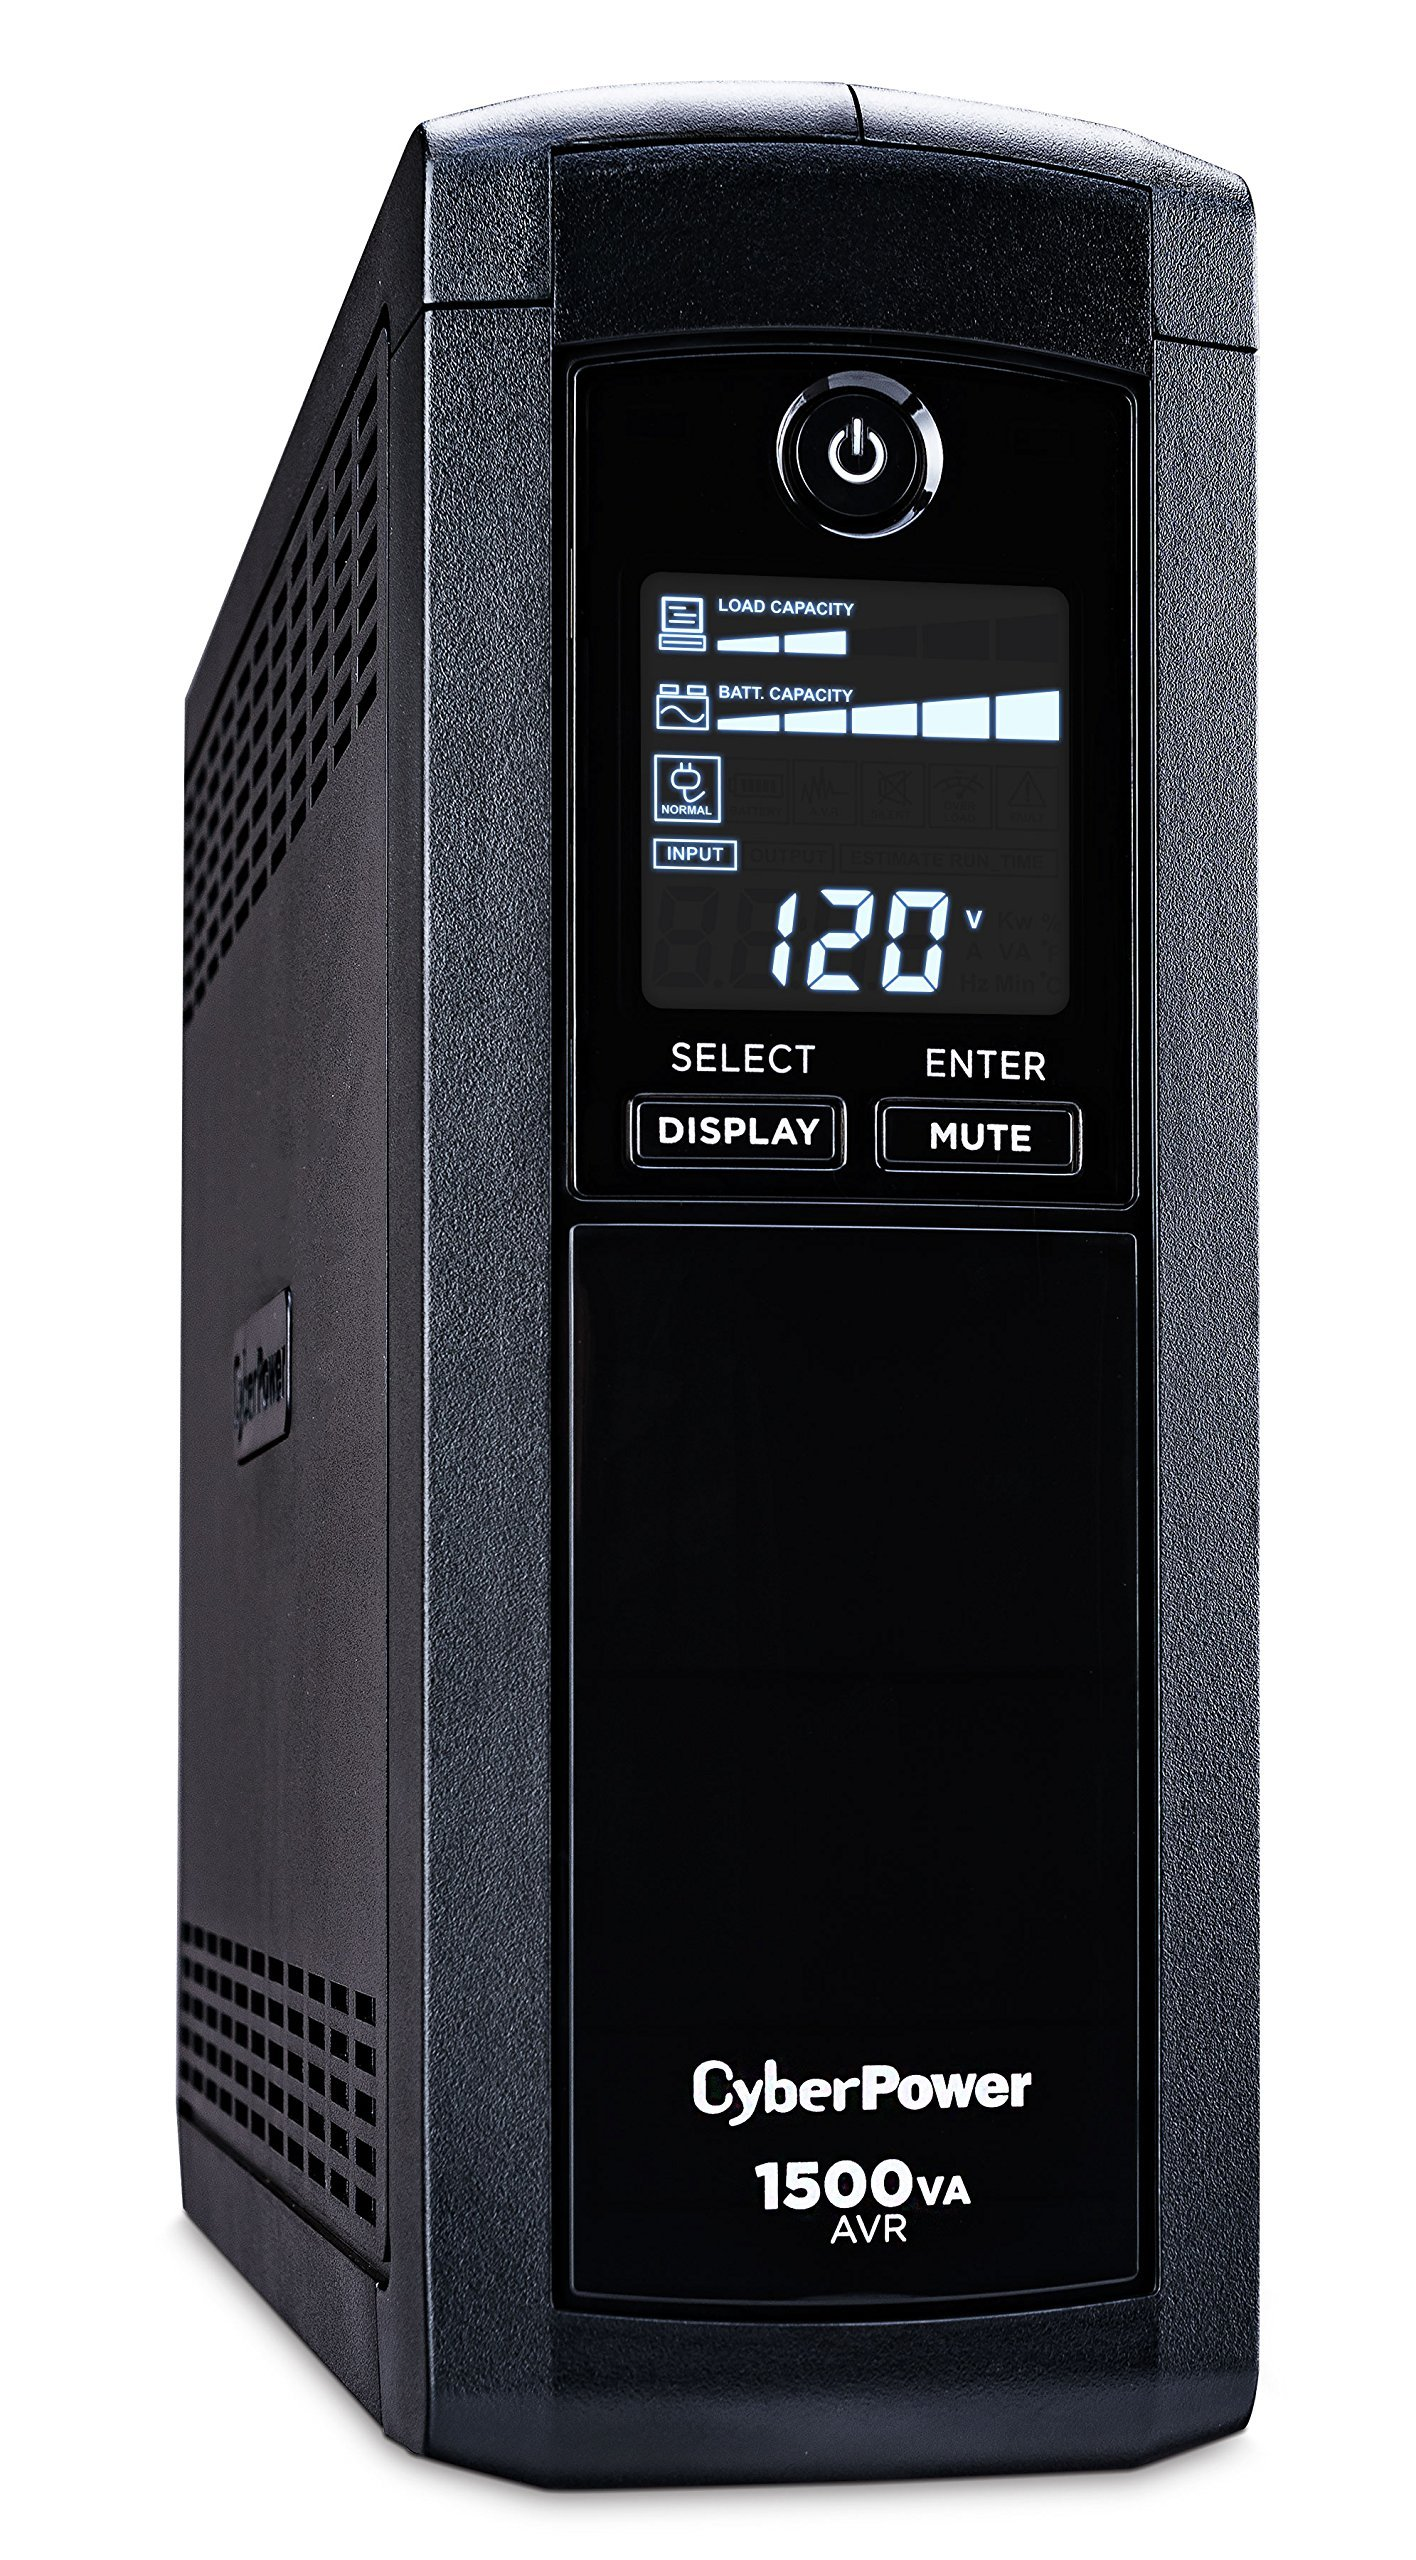 CyberPower  CP1500AVRLCD Intelligent LCD UPS System, 1500VA/900W, 12 Outlets, AVR, Mini-Tower (Renewed)